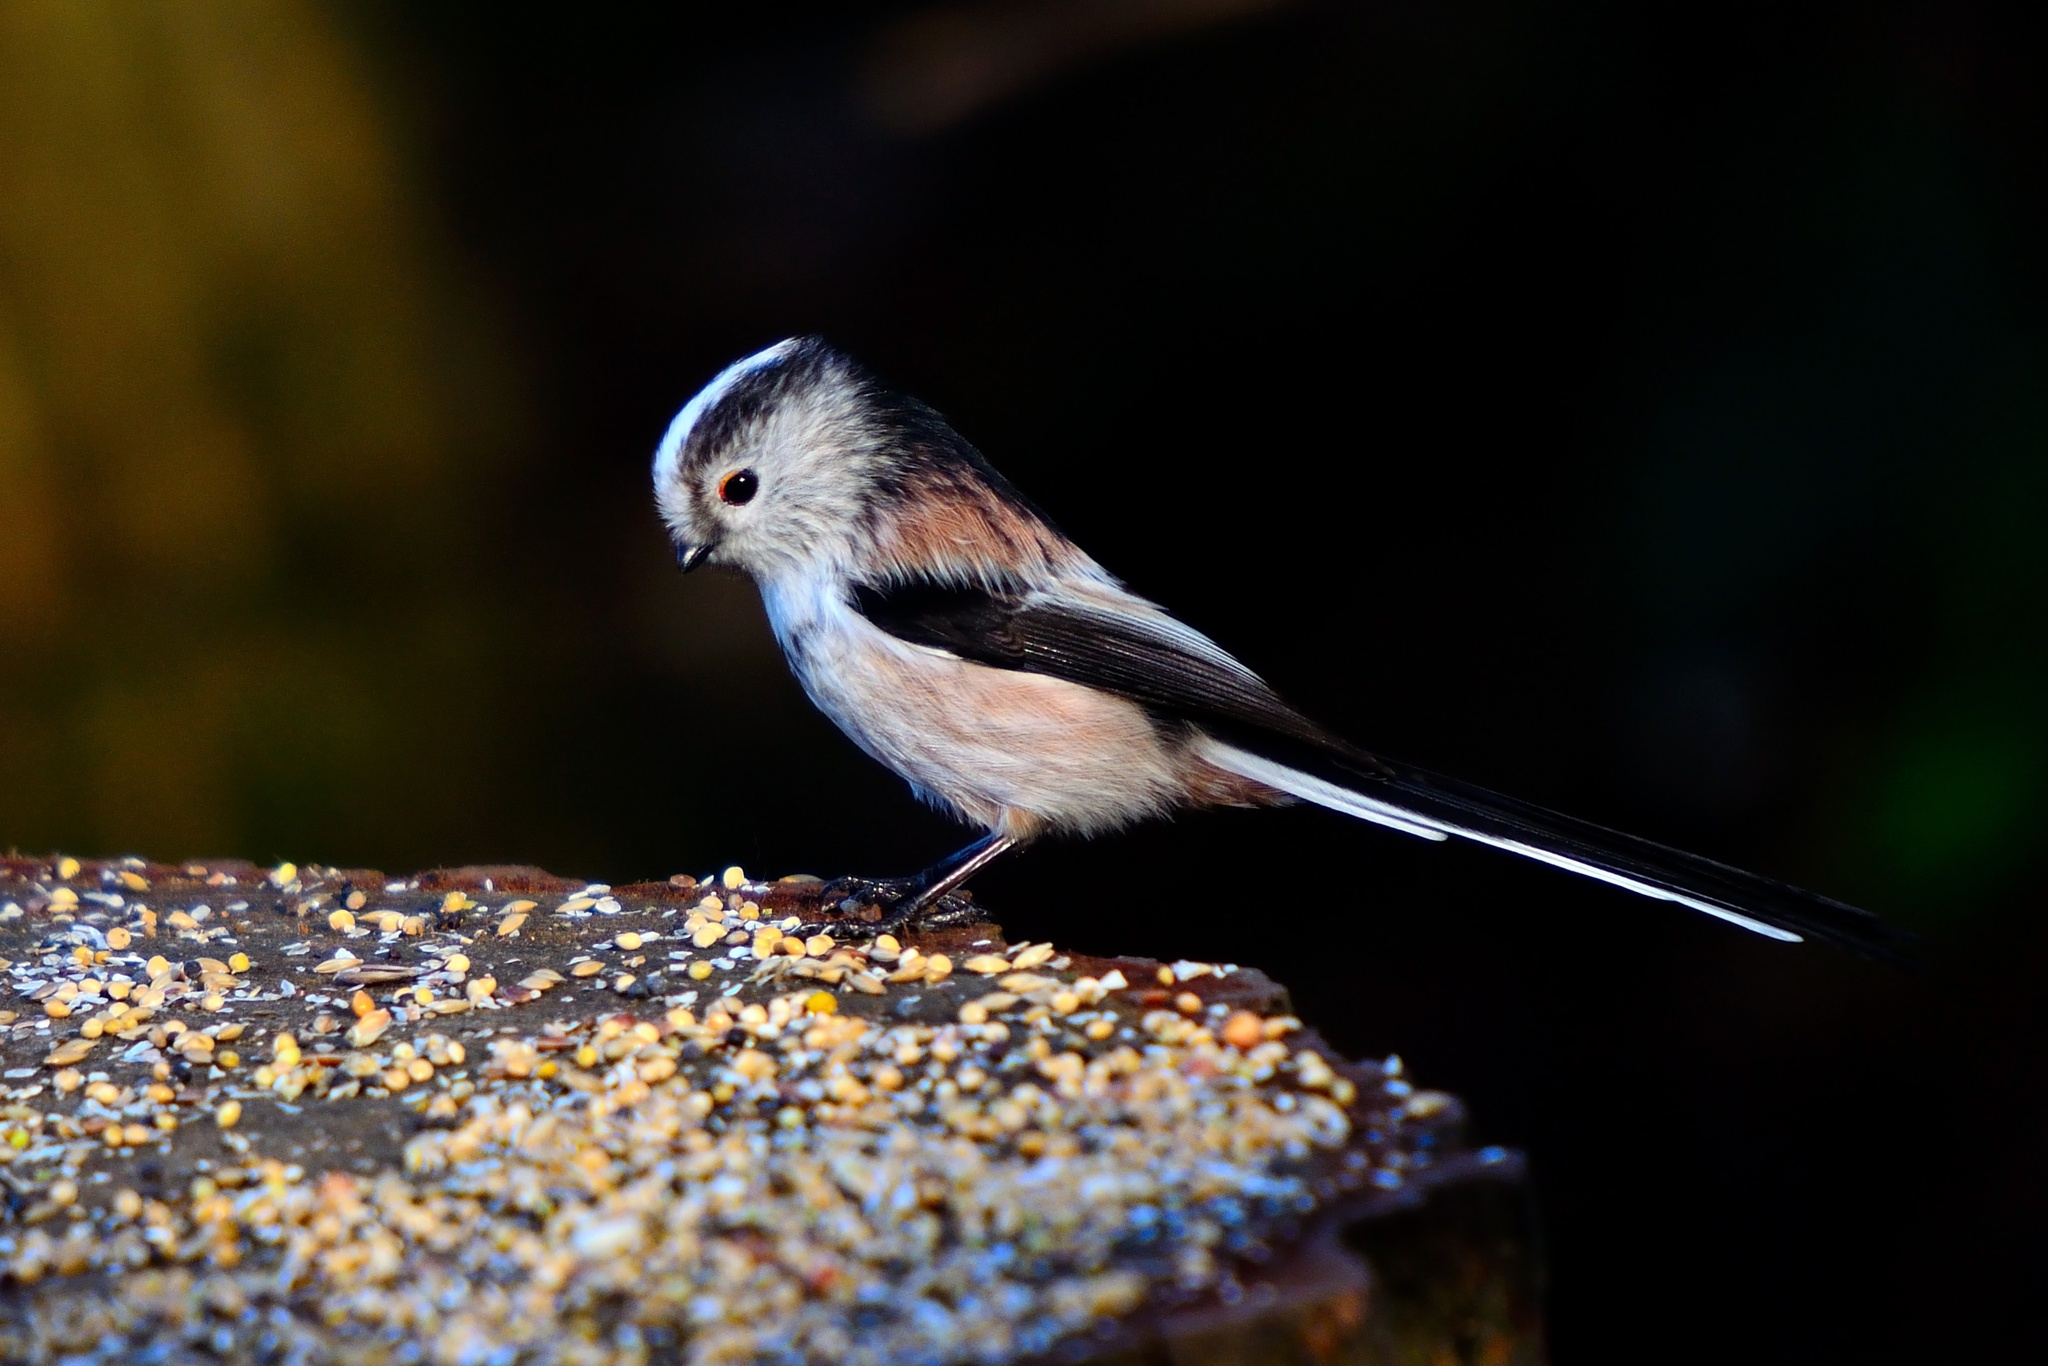 Long-tailed Tit by Steve Rawlings